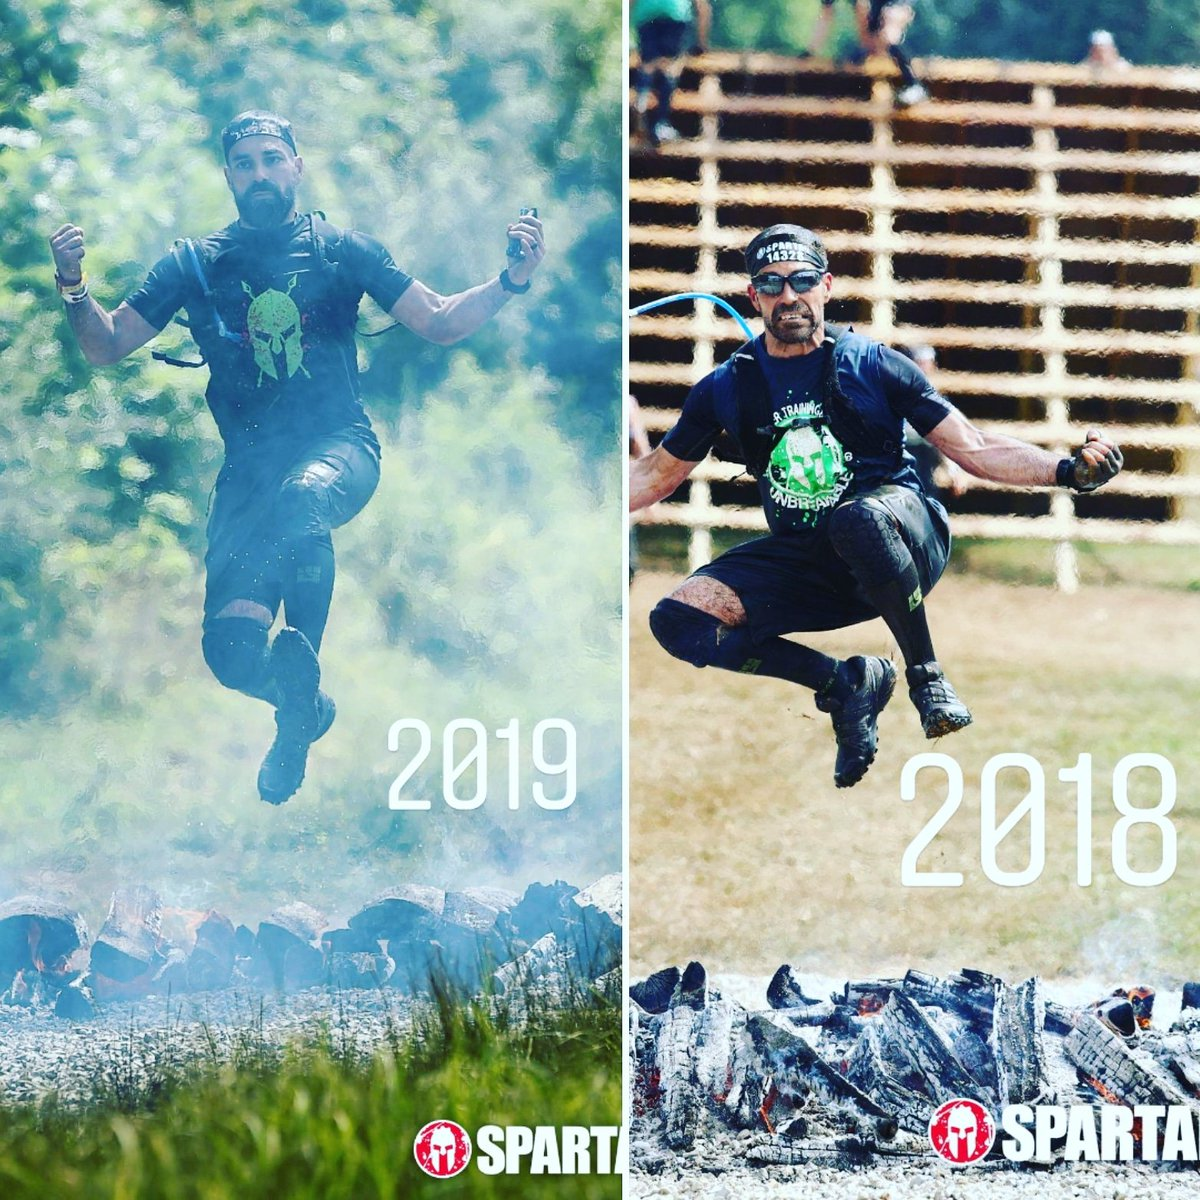 One of my favorite fire jumps is at Palmerton because of the challenging venue  #firejumpfriday #FlashBackFriday #spartanrace #spartansprint #spartansuper #spartanbeast #spartanultra #trifectatribe #spartantraining #spartanarmy2019 #spartanup #spartanstrong #OCR#obstaclecourse